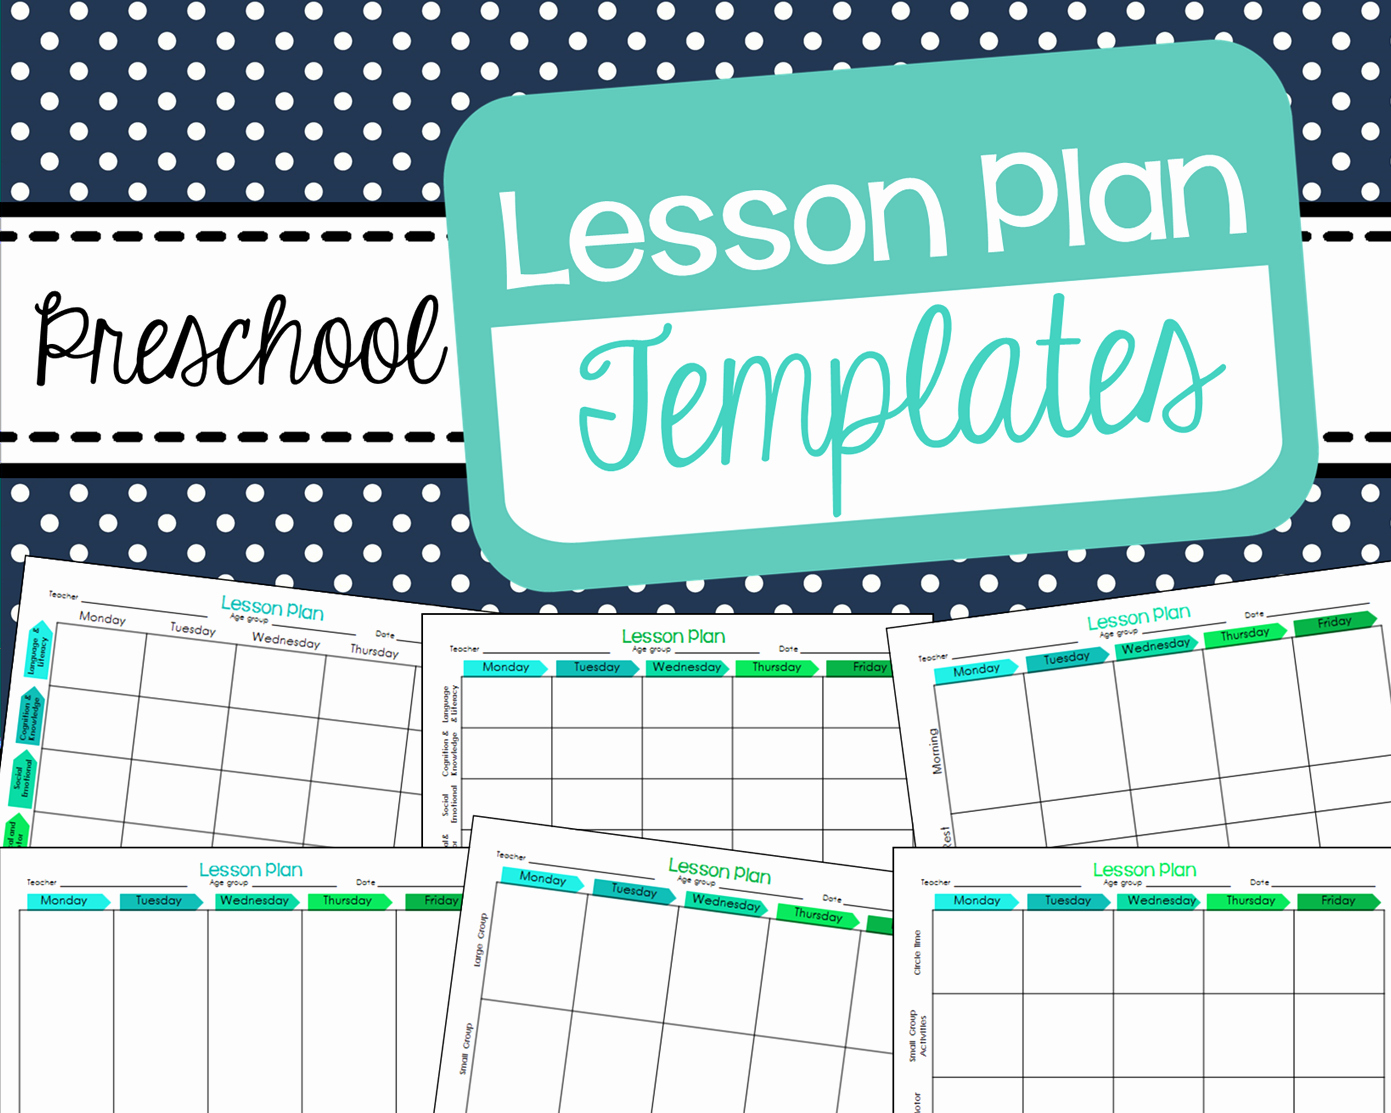 Daycare Lesson Plan Template Best Of Free Preschool Lesson Plan Templates